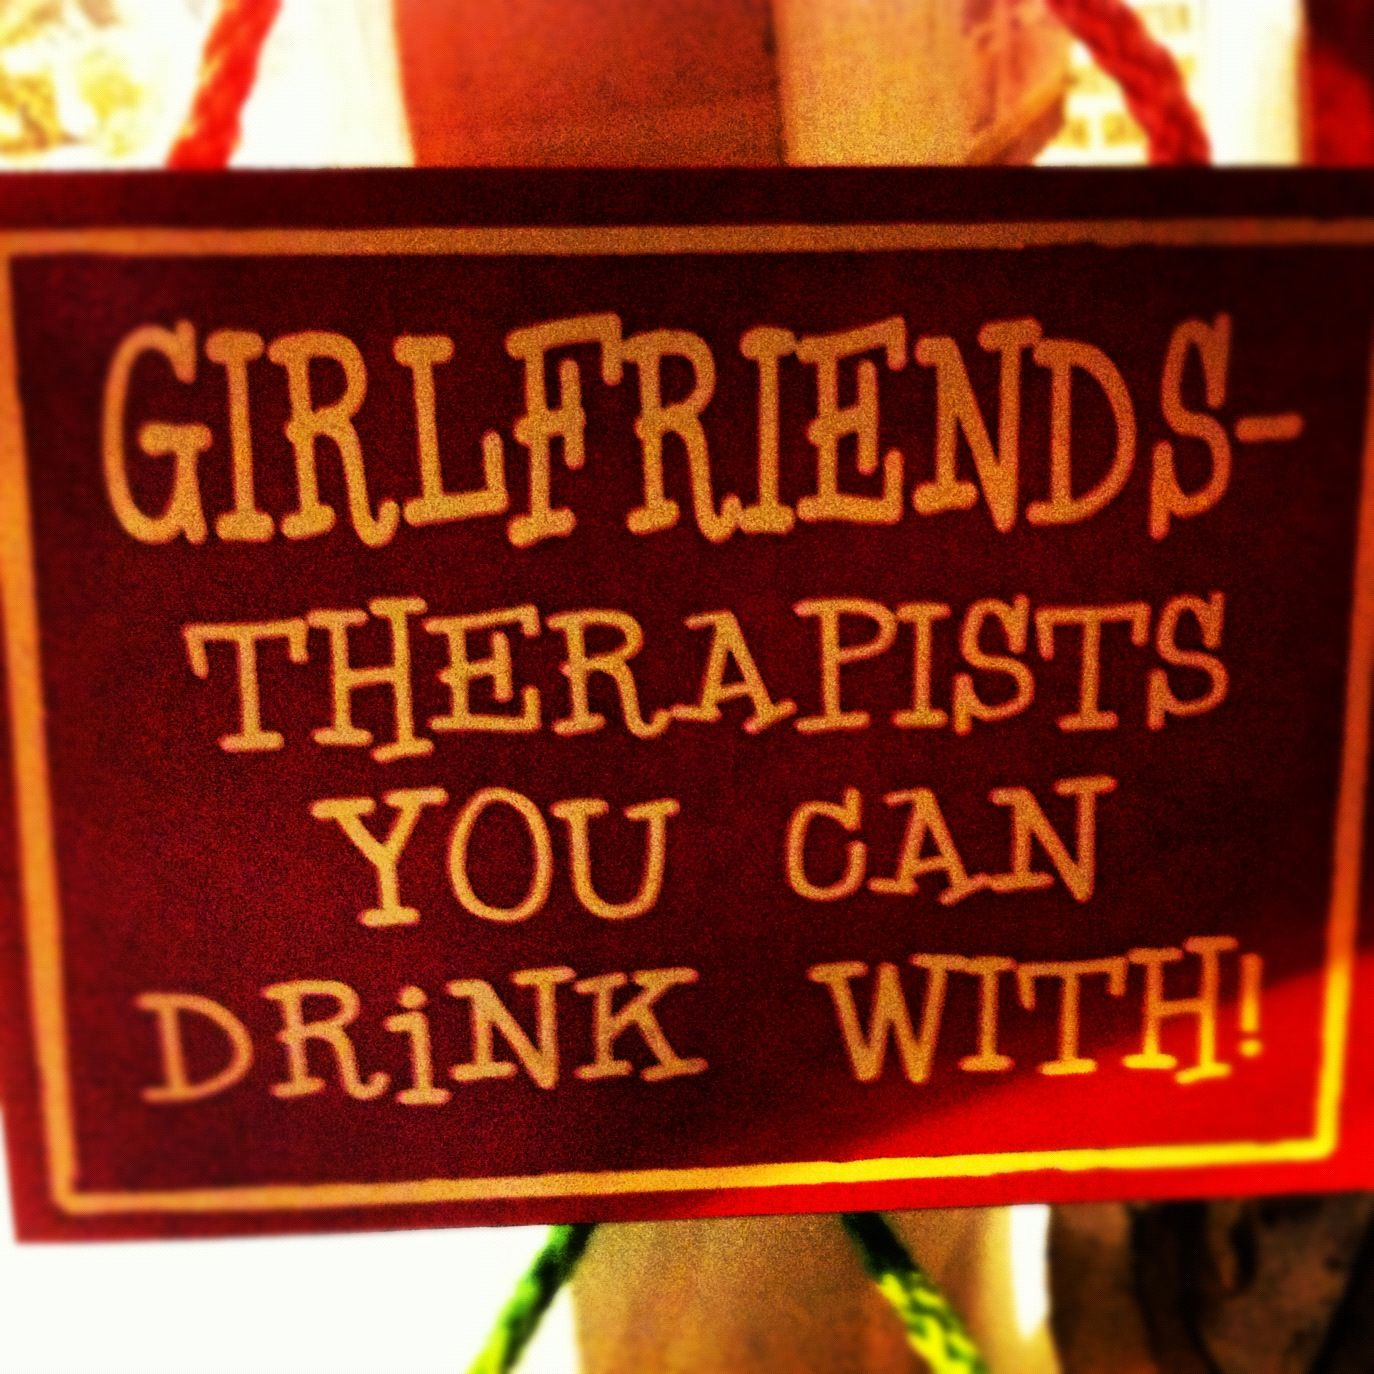 Quotes About Wine And Friendship Girlfriends  Therapists You Can Drink Wine With  Wine Quotes